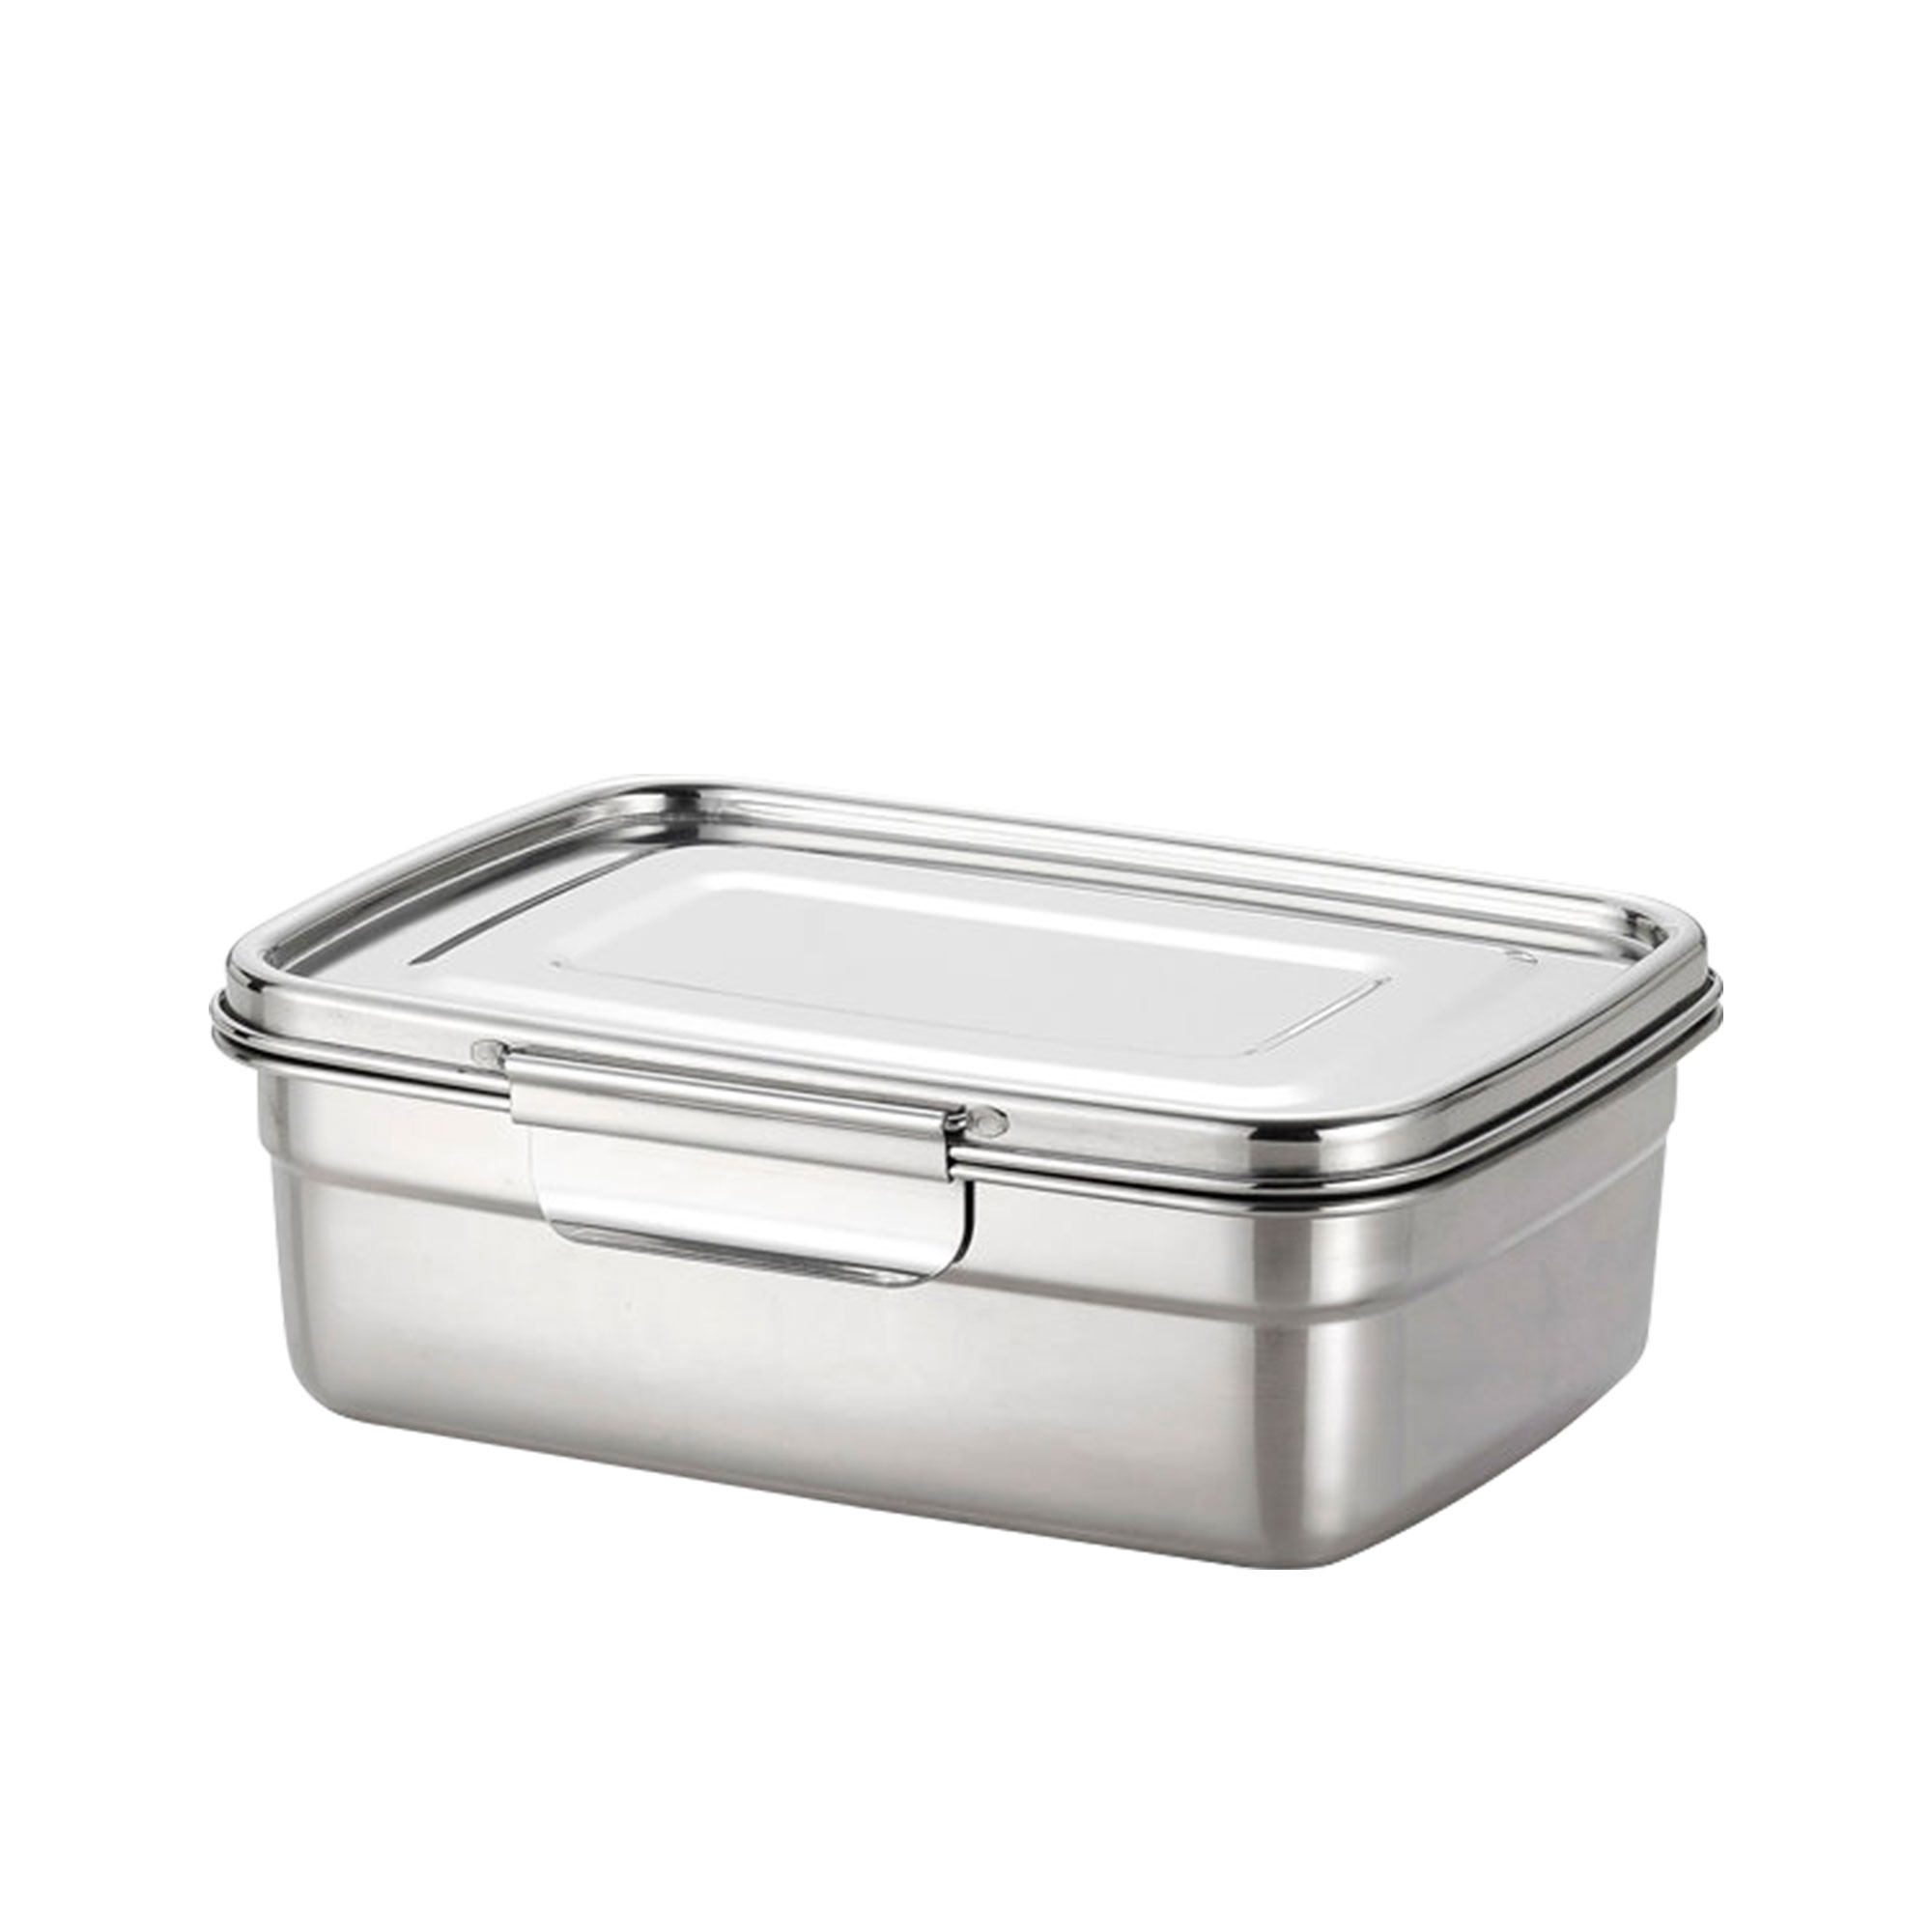 Avanti Dry Cell Stainless Steel Food Container 2.6L